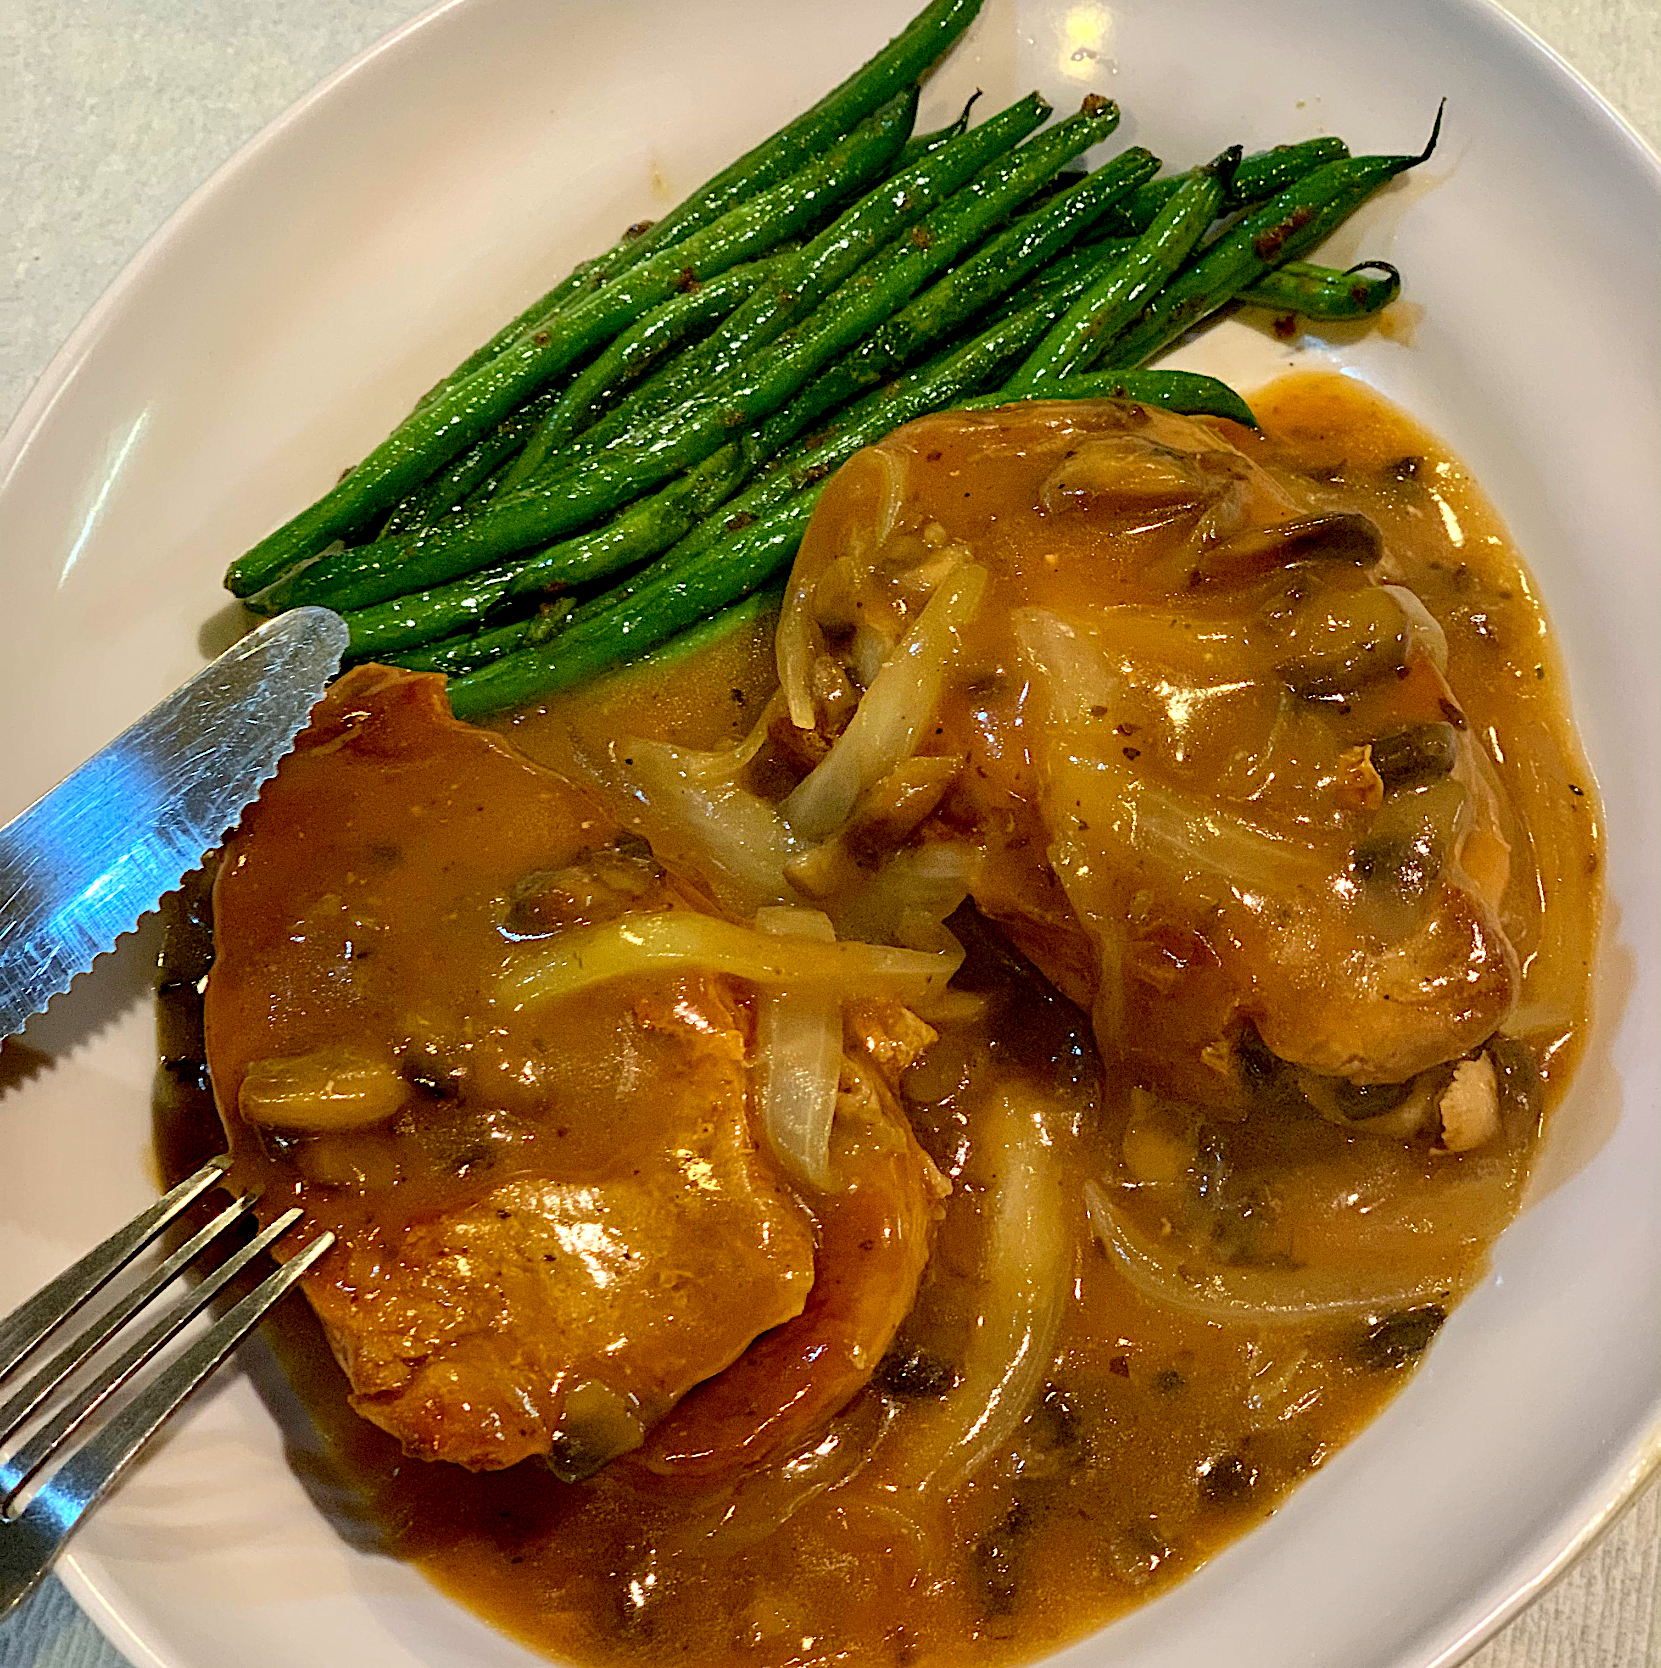 Dinner: Keto Pork Steaks with Homemade Mushroom Gravy & Garlic-Buttered String Beans!!!